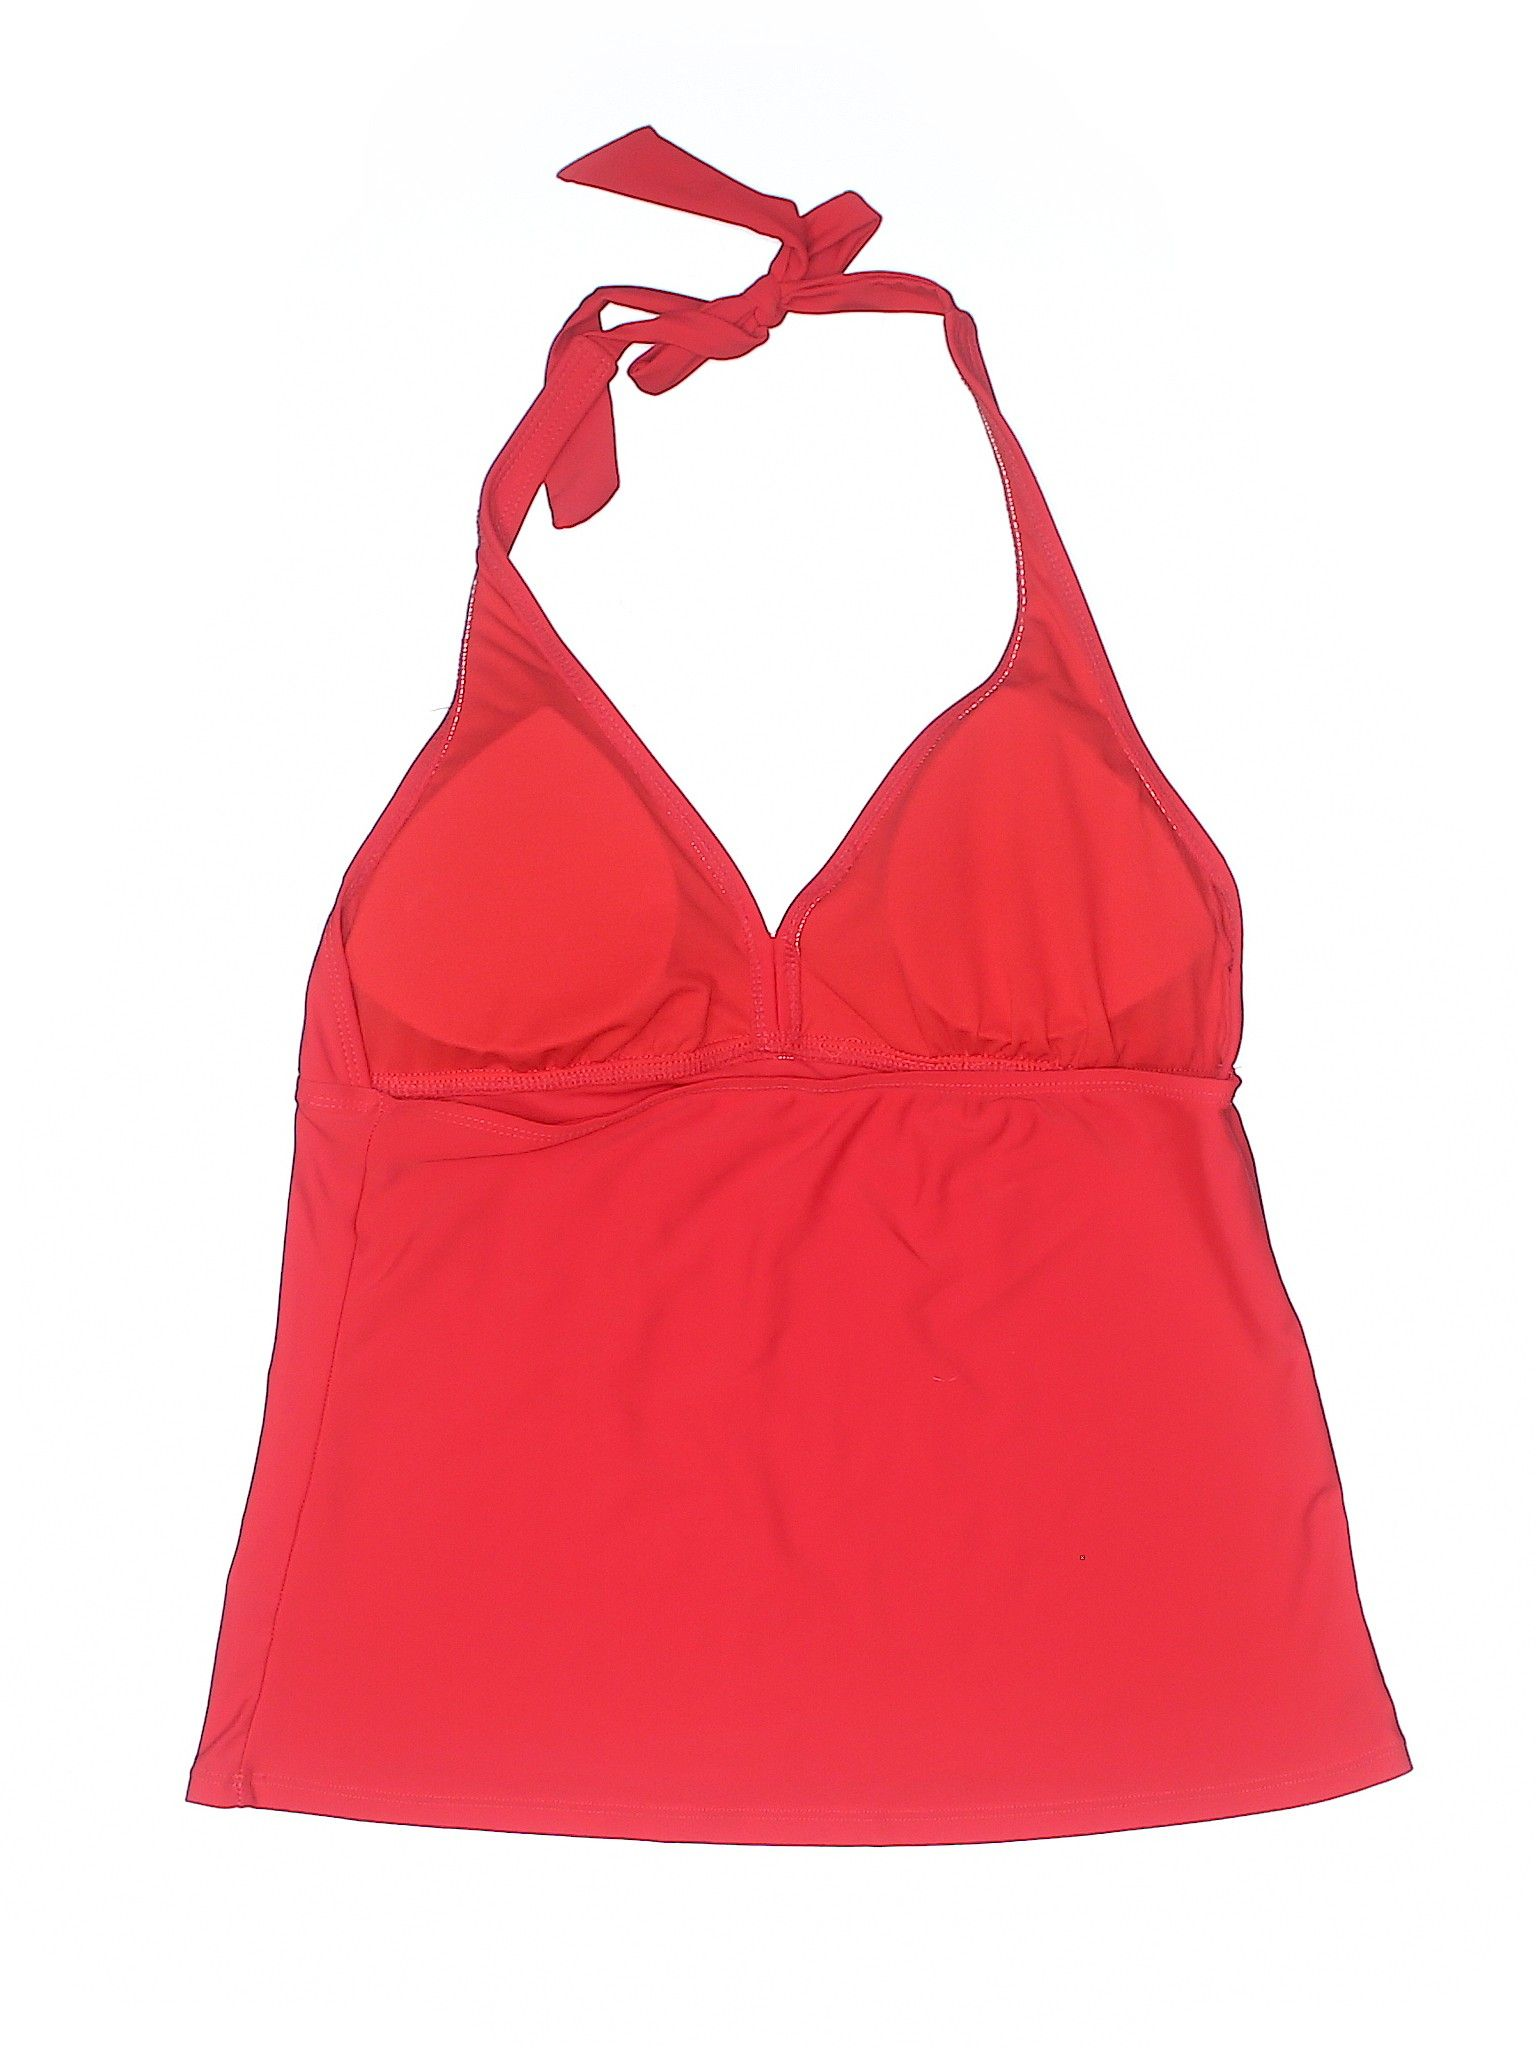 Catalina Swimsuit Top Size 800 Red Womens Swimwear  $799